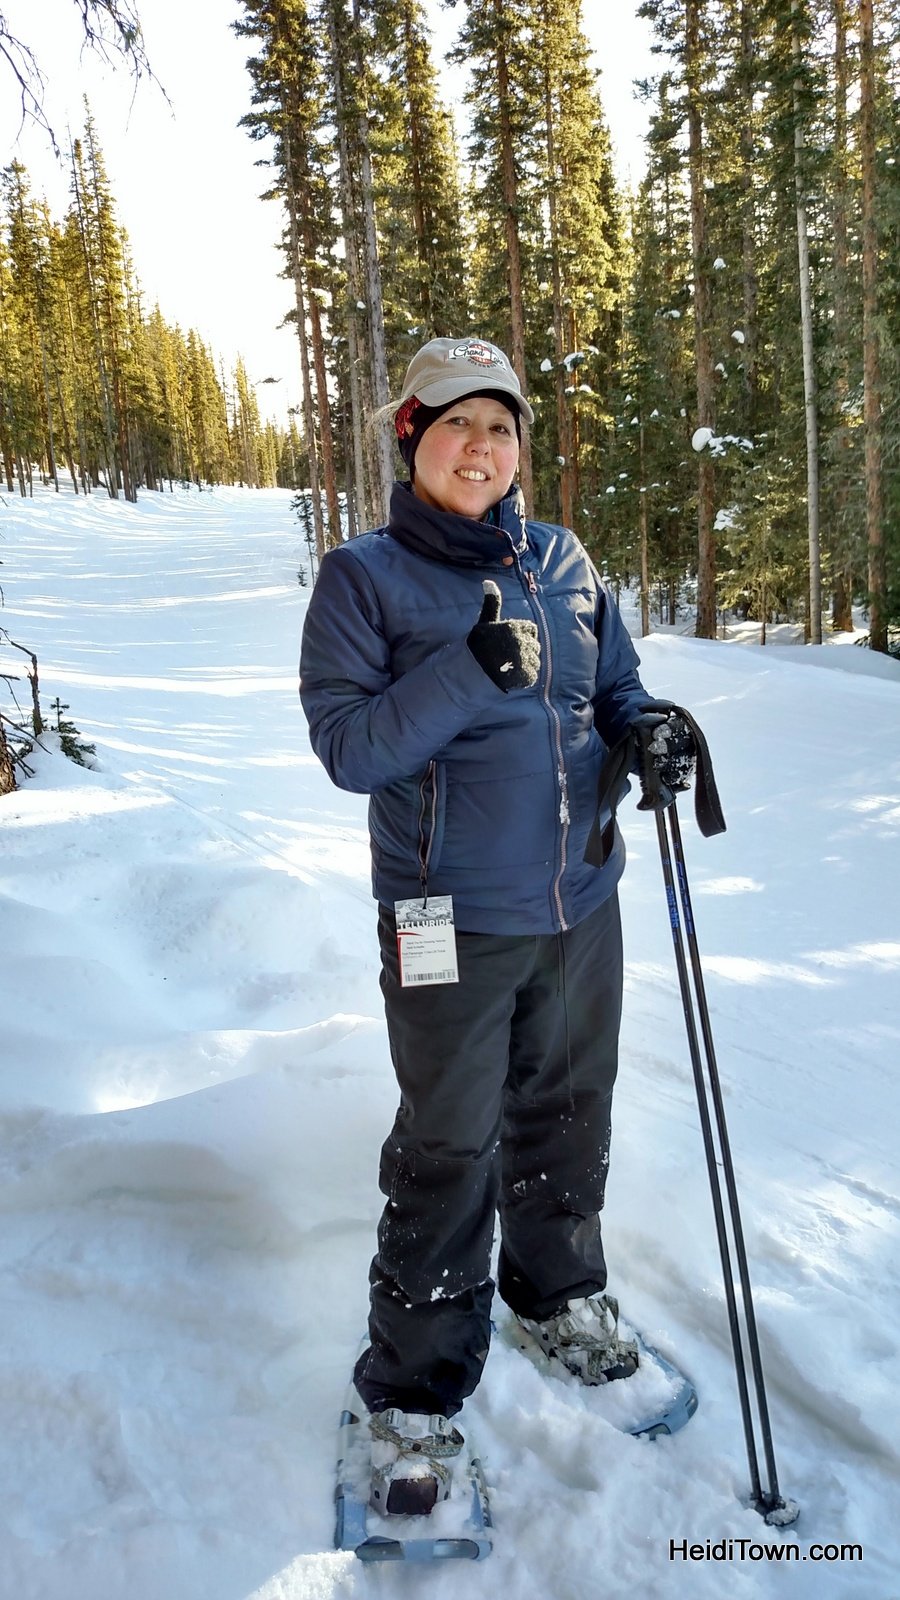 Why it's easy to #OptOutside in Colorado. Snowshoeing at Telluride Ski Resort. HeidiTown.com